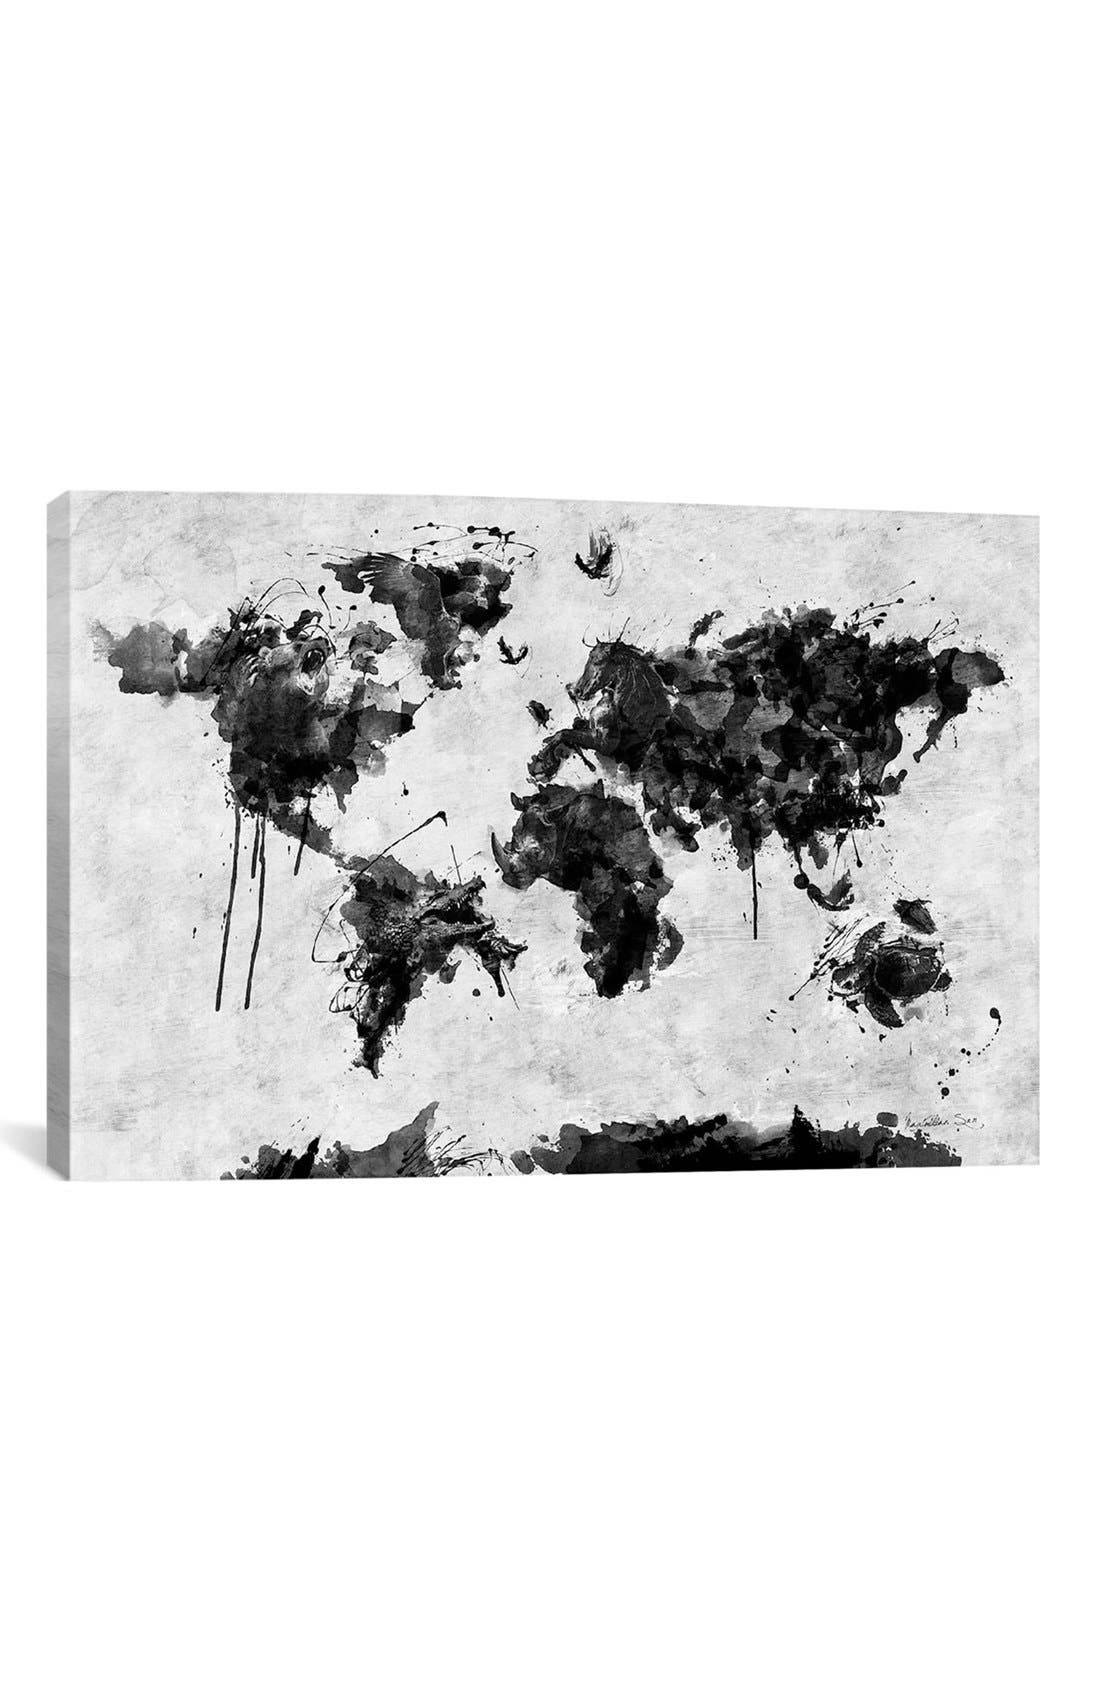 Alternate Image 1 Selected - iCanvas 'Wild World - Diego Tirigall' Giclée Print Canvas Art